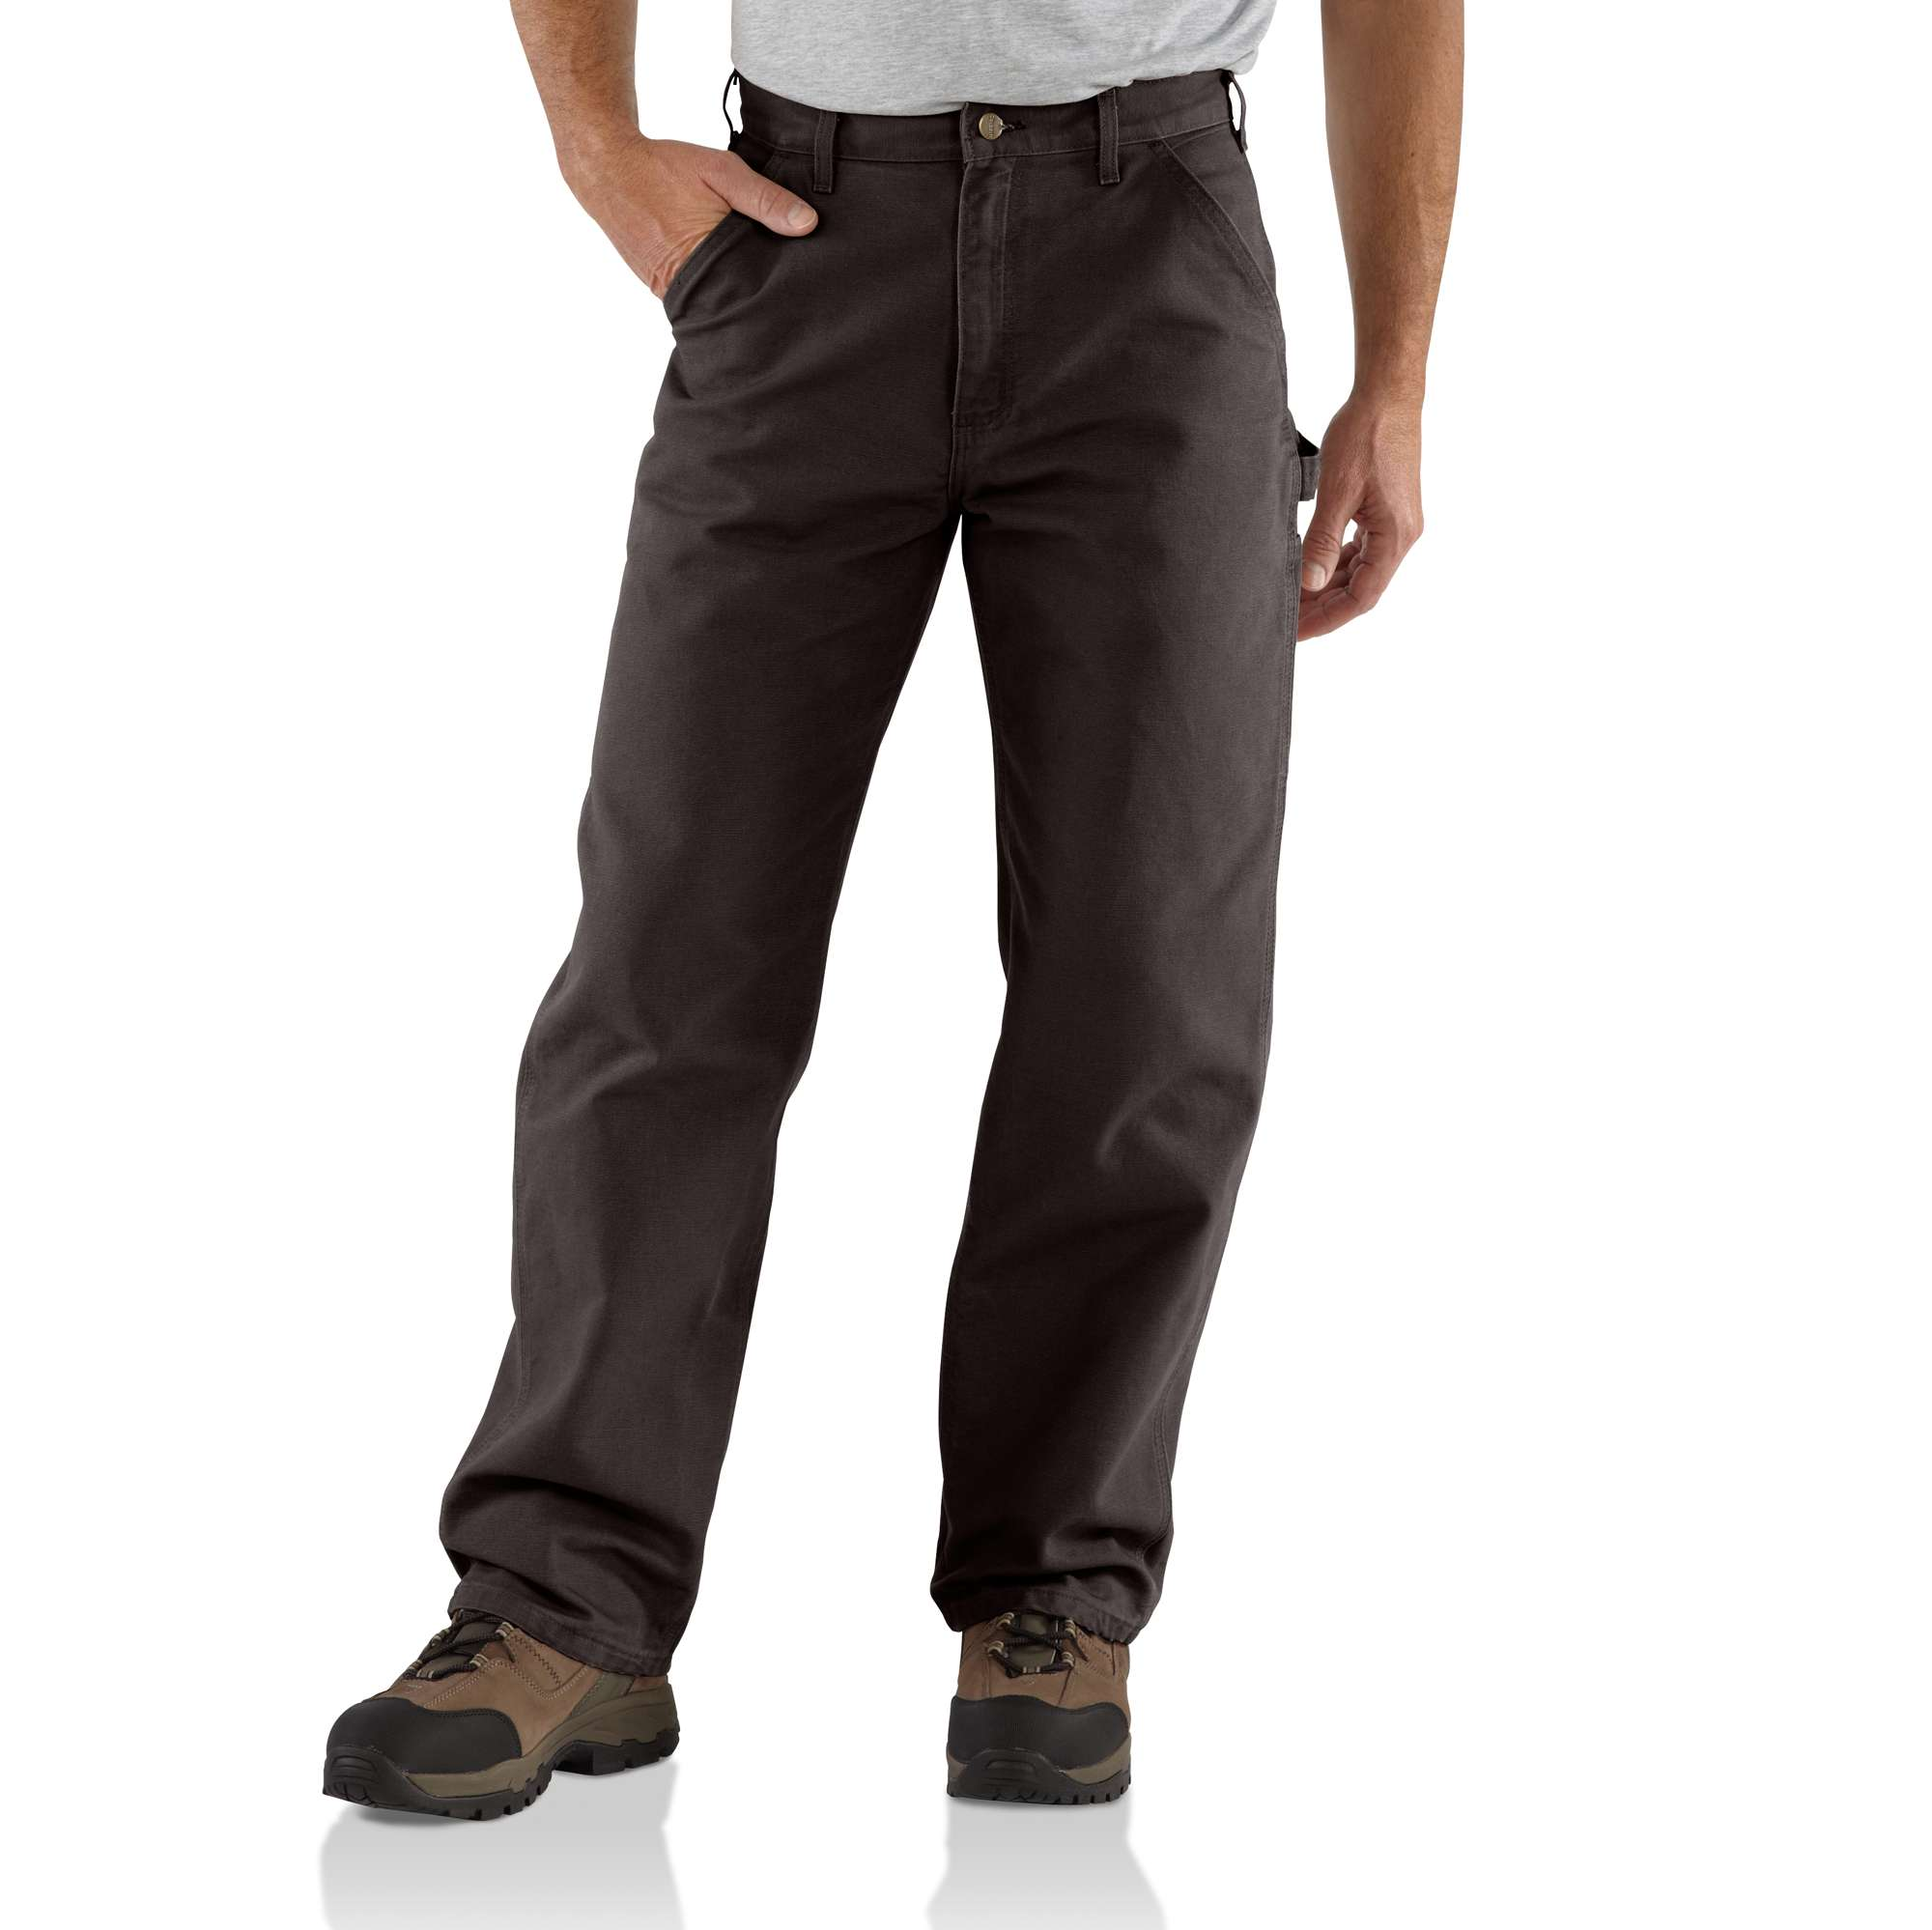 Carhartt Men/'s Trousers Washed Duck Multipocket Work Cargo Pant New